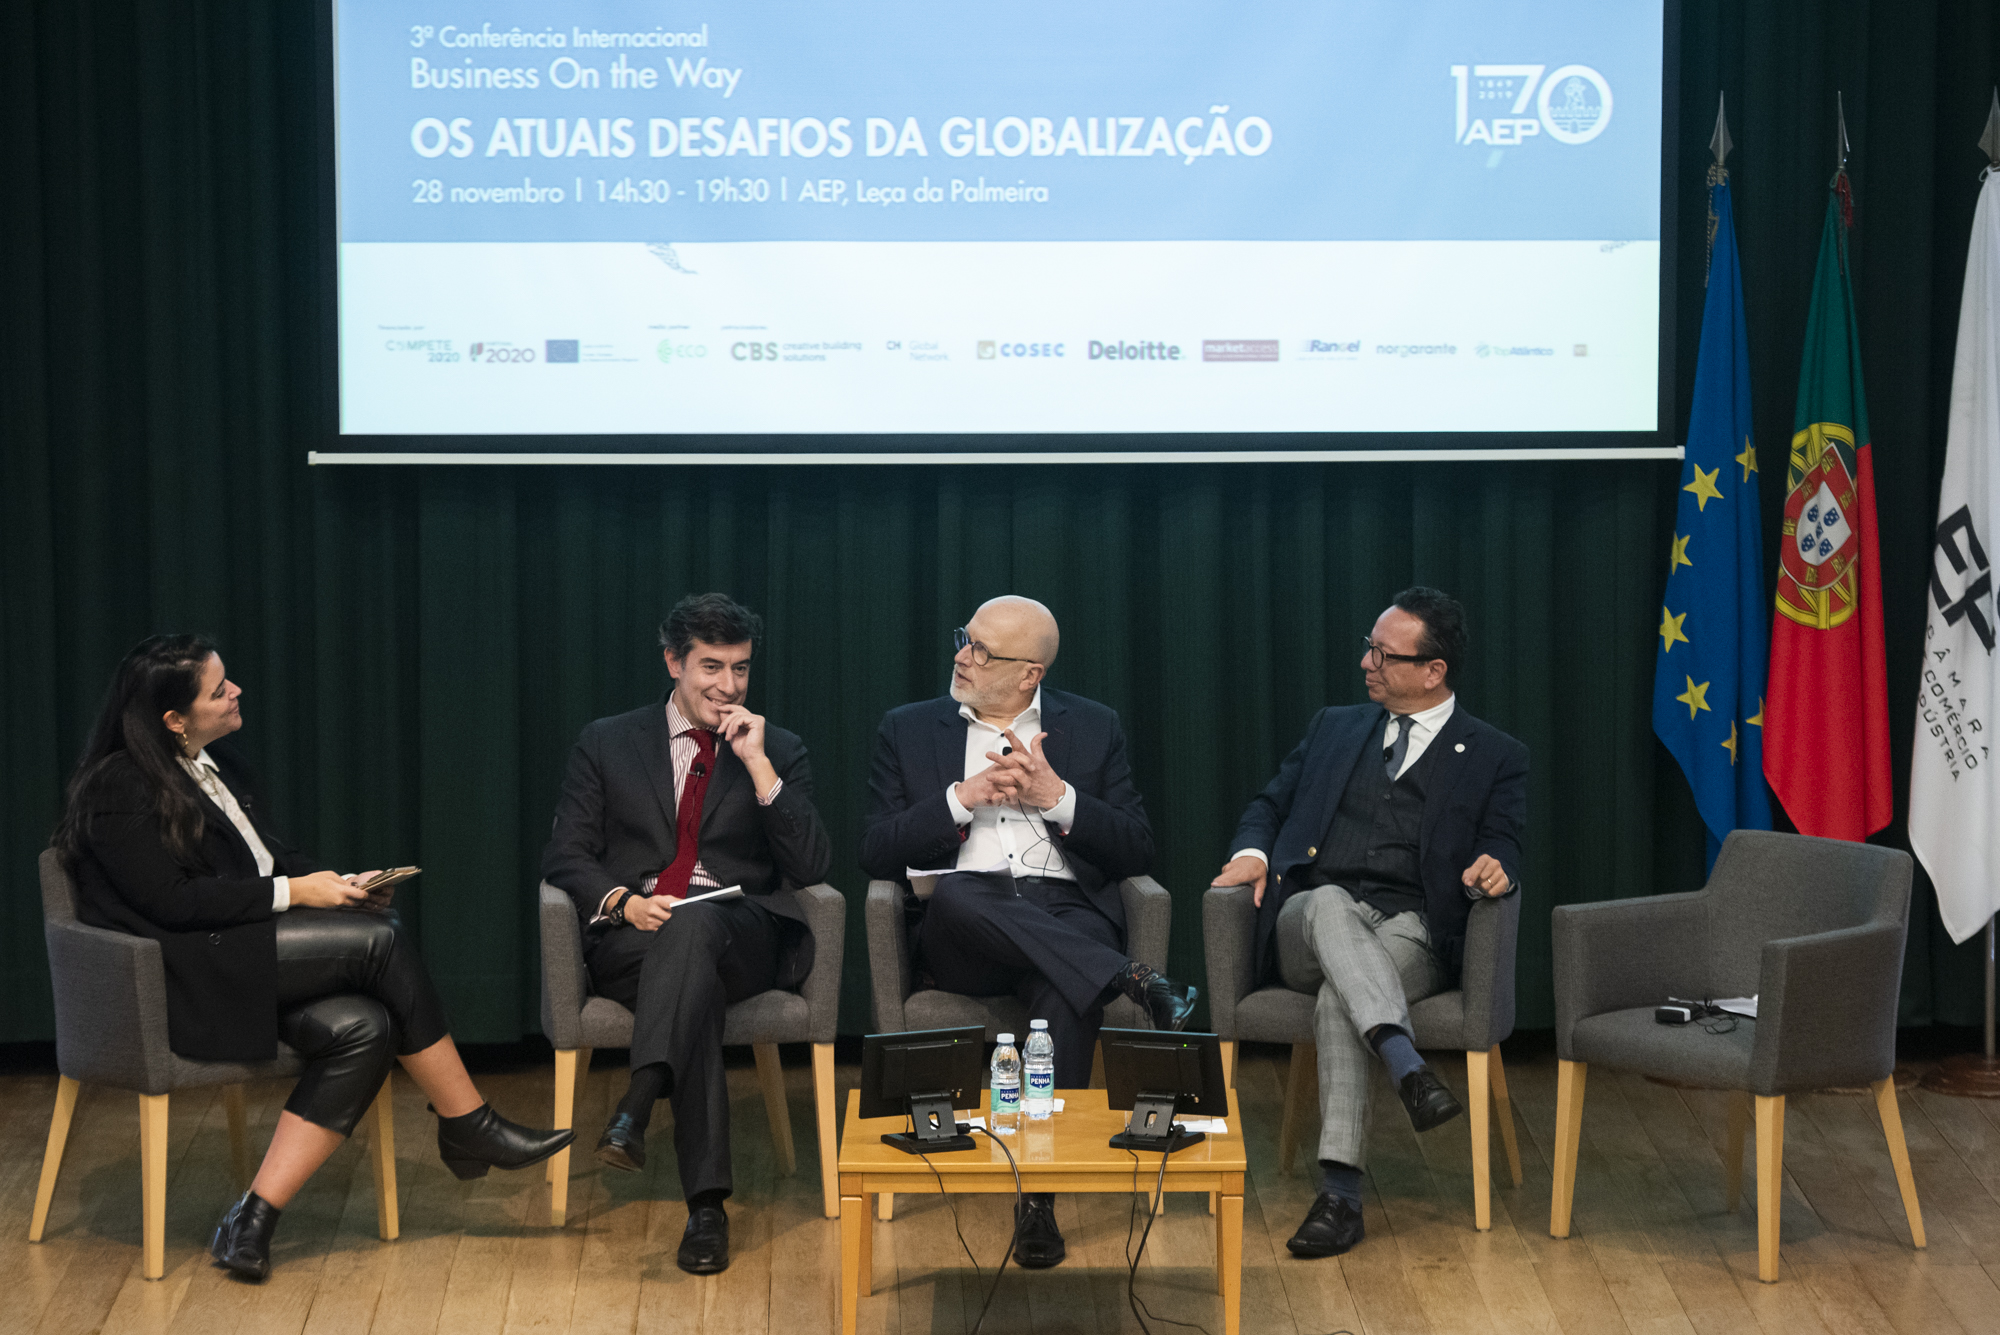 Conferência Business on the Way, AEP - 28NOV19